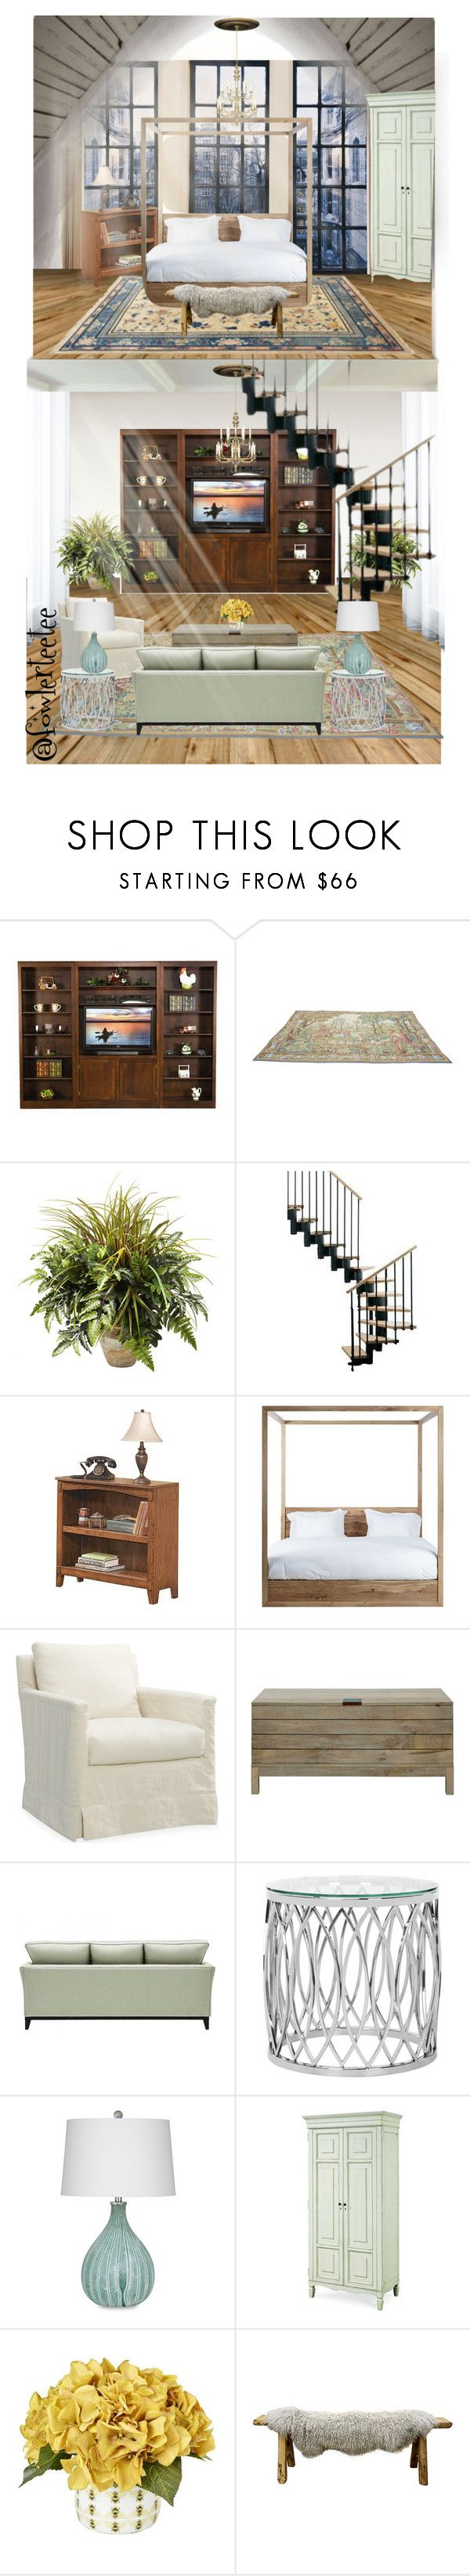 """""""Two-Story Condo"""" by fowlerteetee ❤ liked on Polyvore featuring interior, interiors, interior design, home, home decor, interior decorating, DutchCrafters, Nearly Natural, Signature Design by Ashley and John Lewis"""